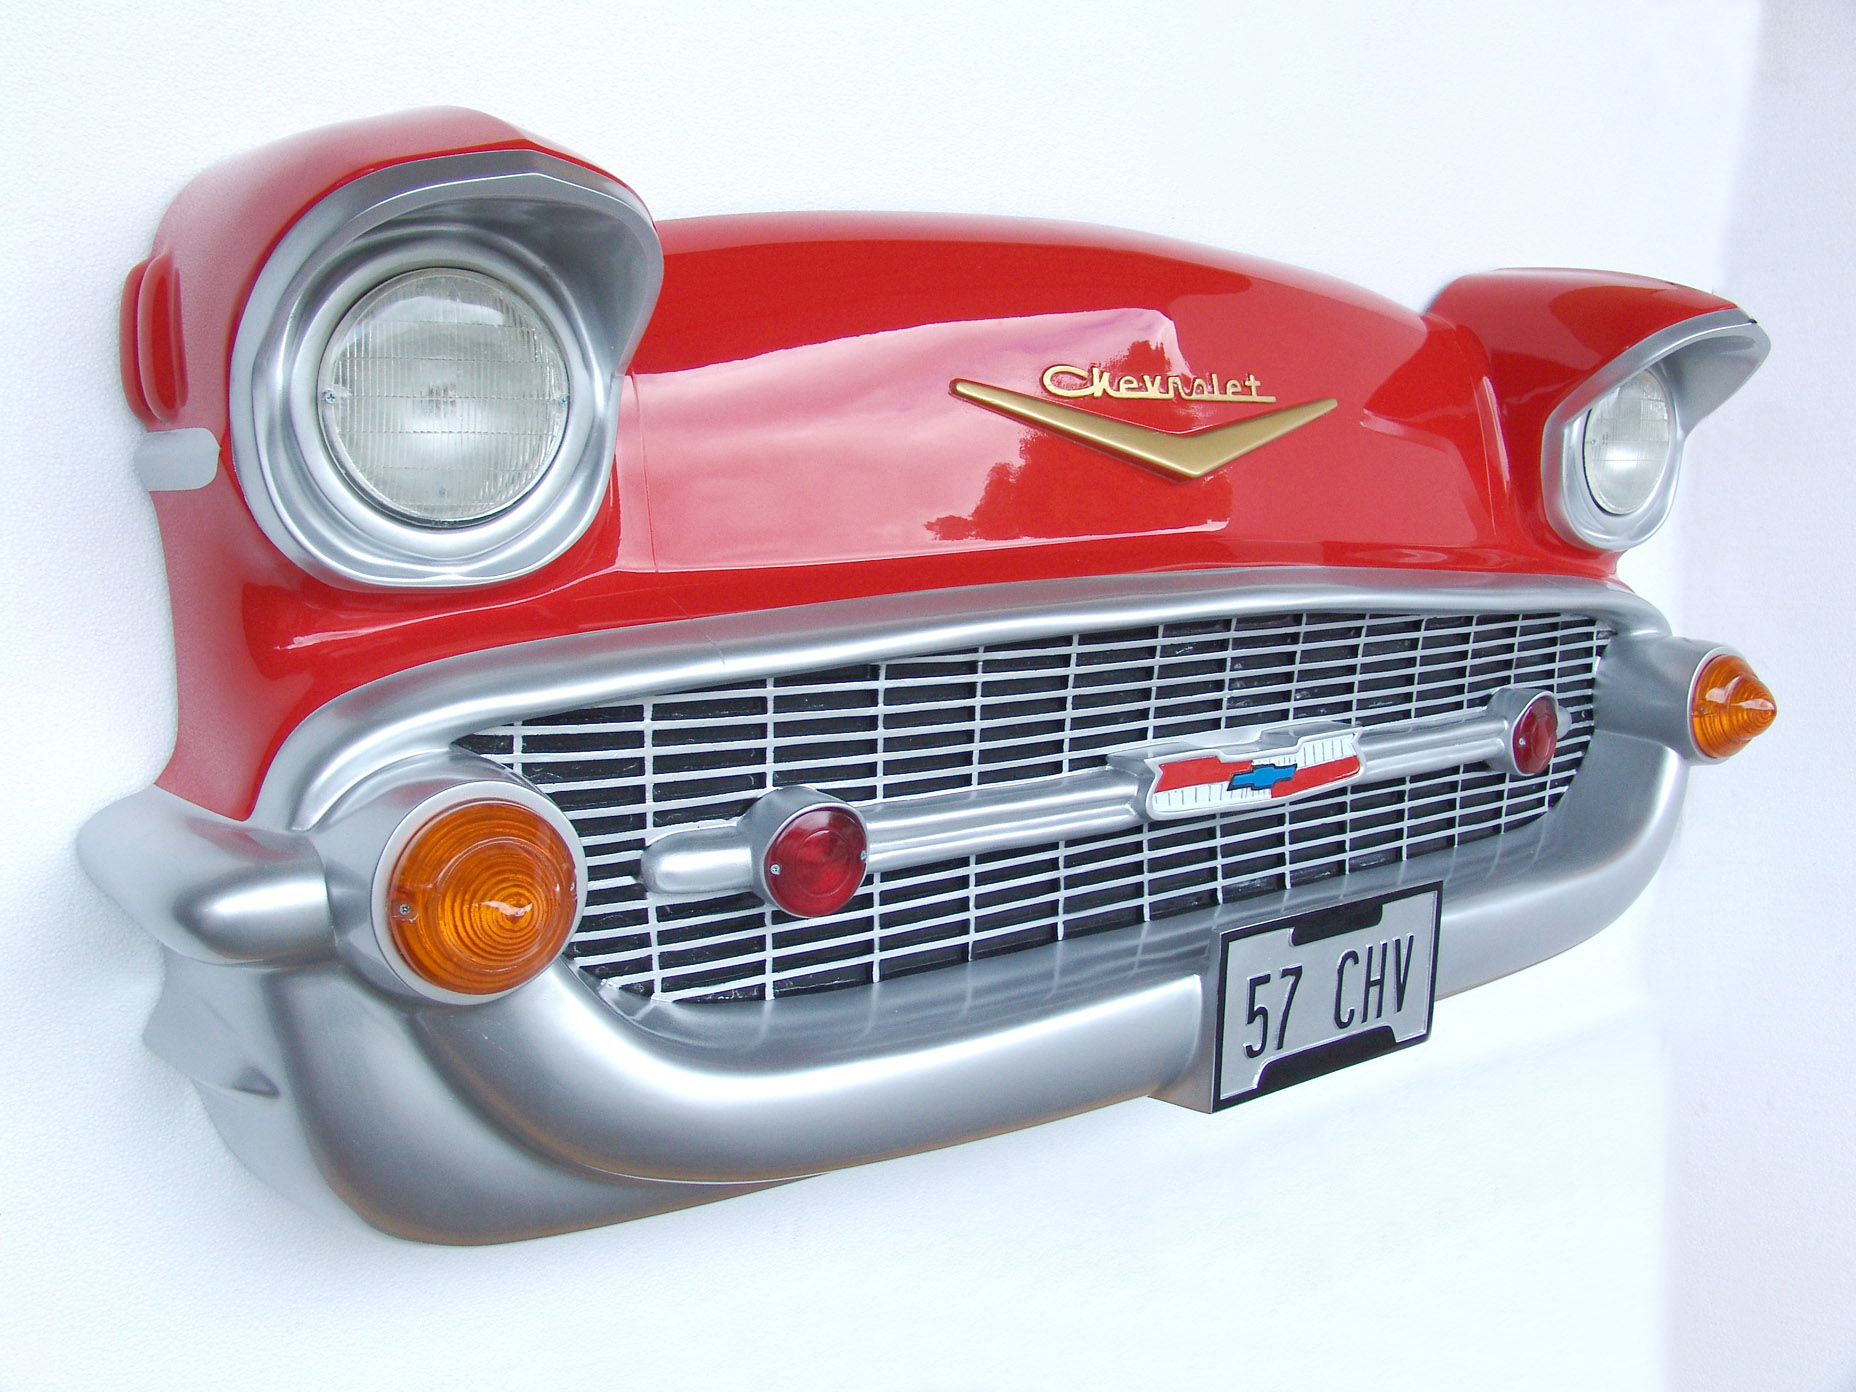 57 chevy front wall decor for Automobile decoration accessories